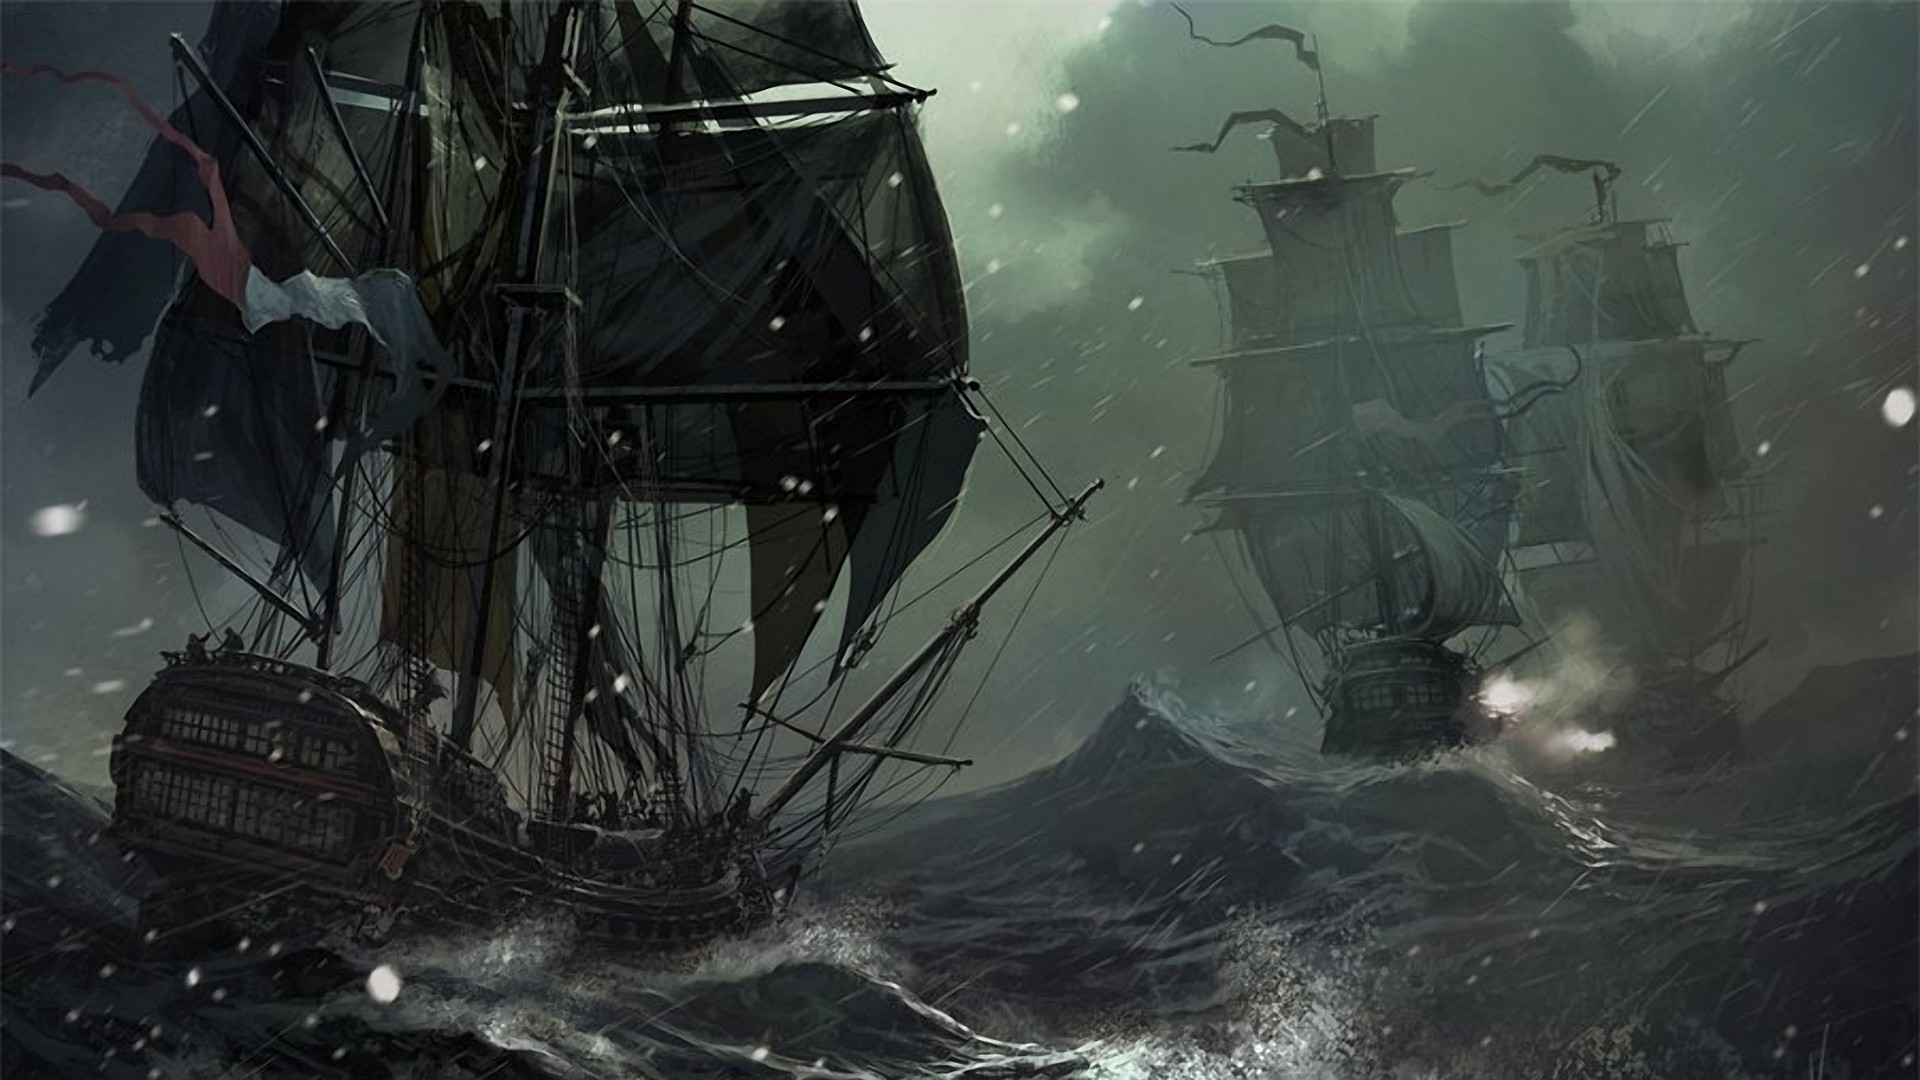 1920x1080 Wallpapers :: water, ocean, snow, rain, storm, ships, 2D